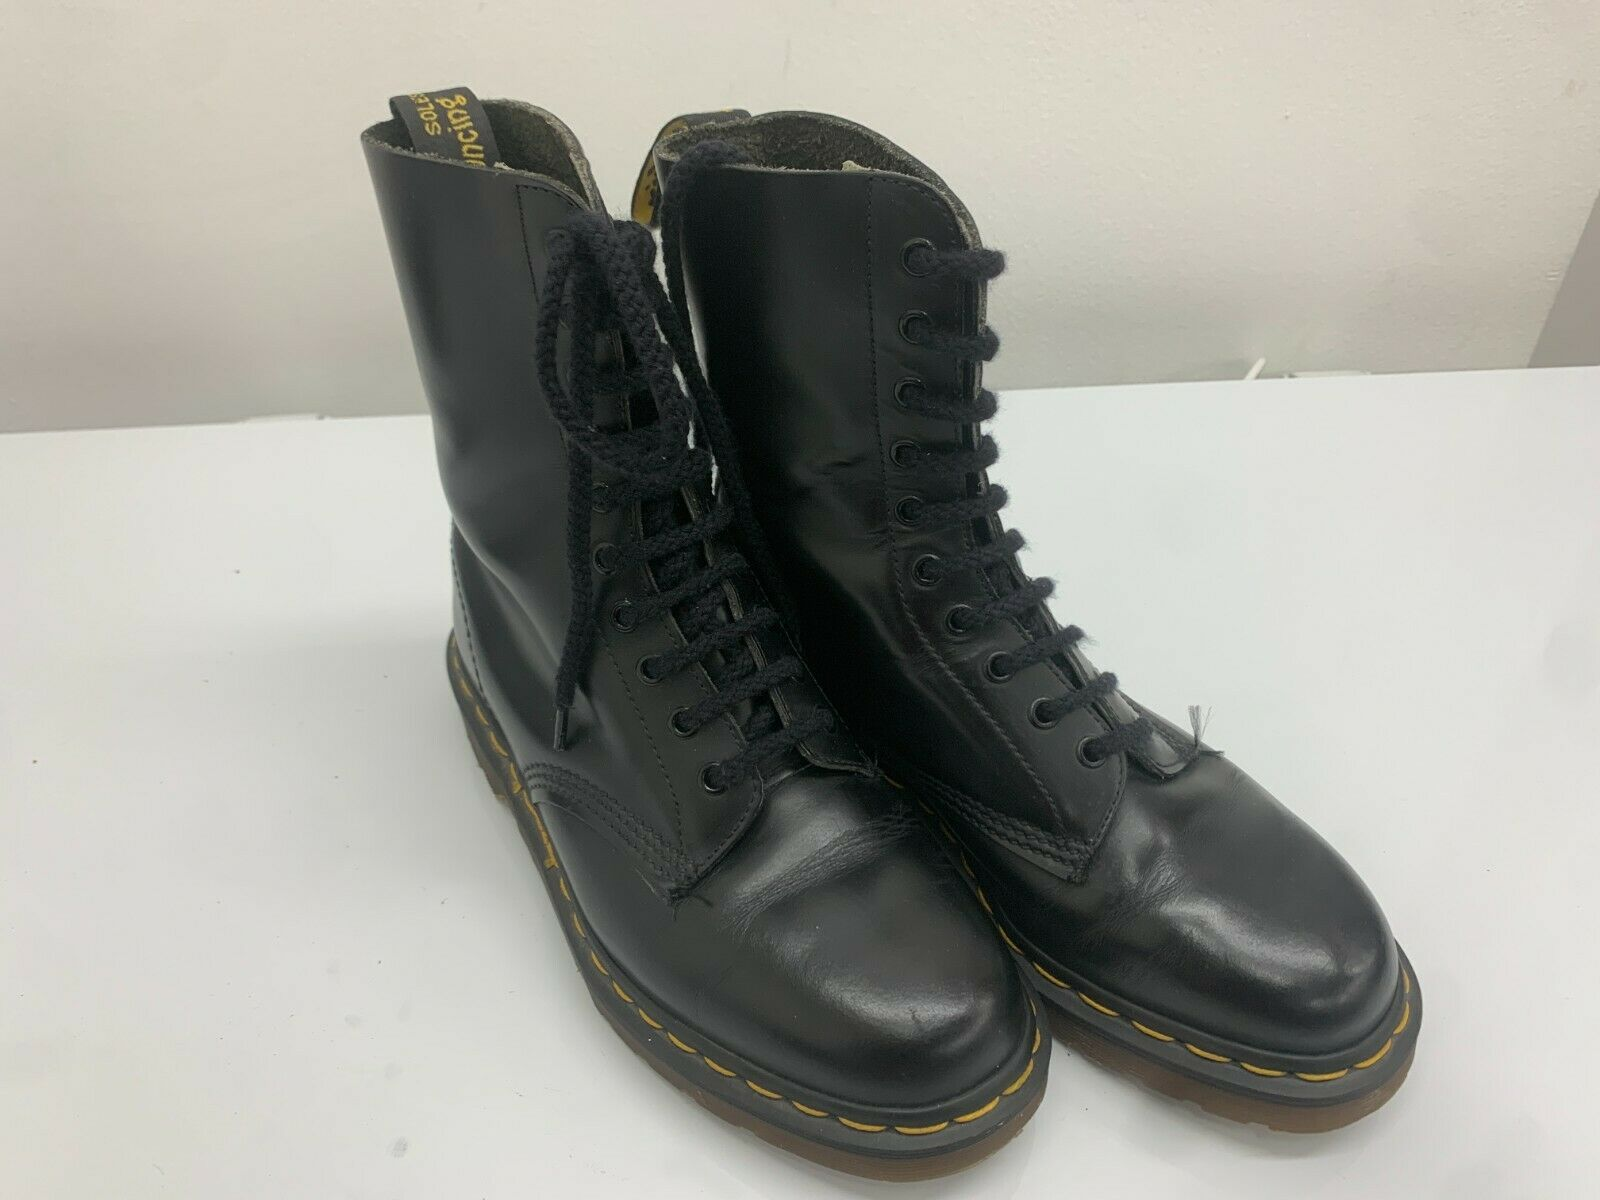 Doc Dr Martens Boots, 10 Eyelets, Black Shiny Leather, Size 7UK, Made In England